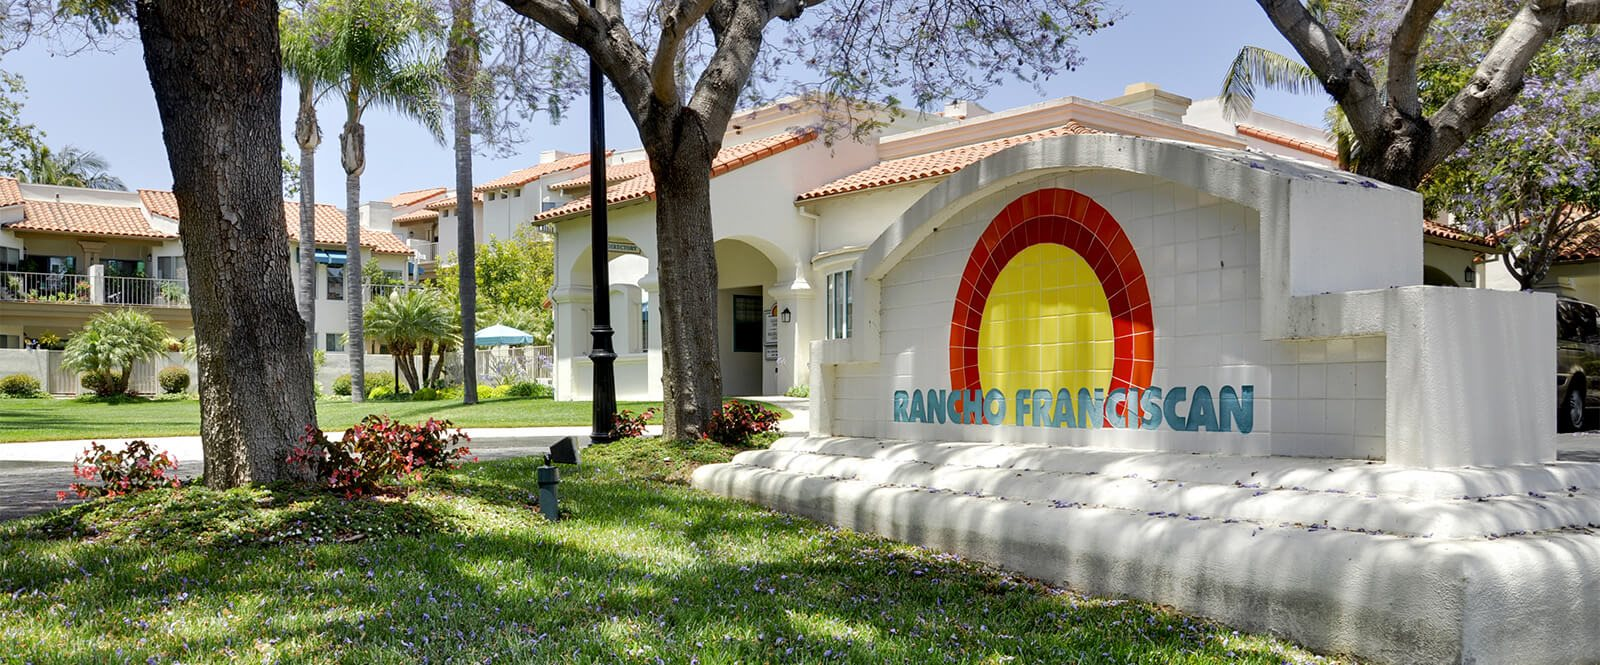 100% Non-Smoking Community, at Rancho Franciscan Senior Apartments, California, 93105